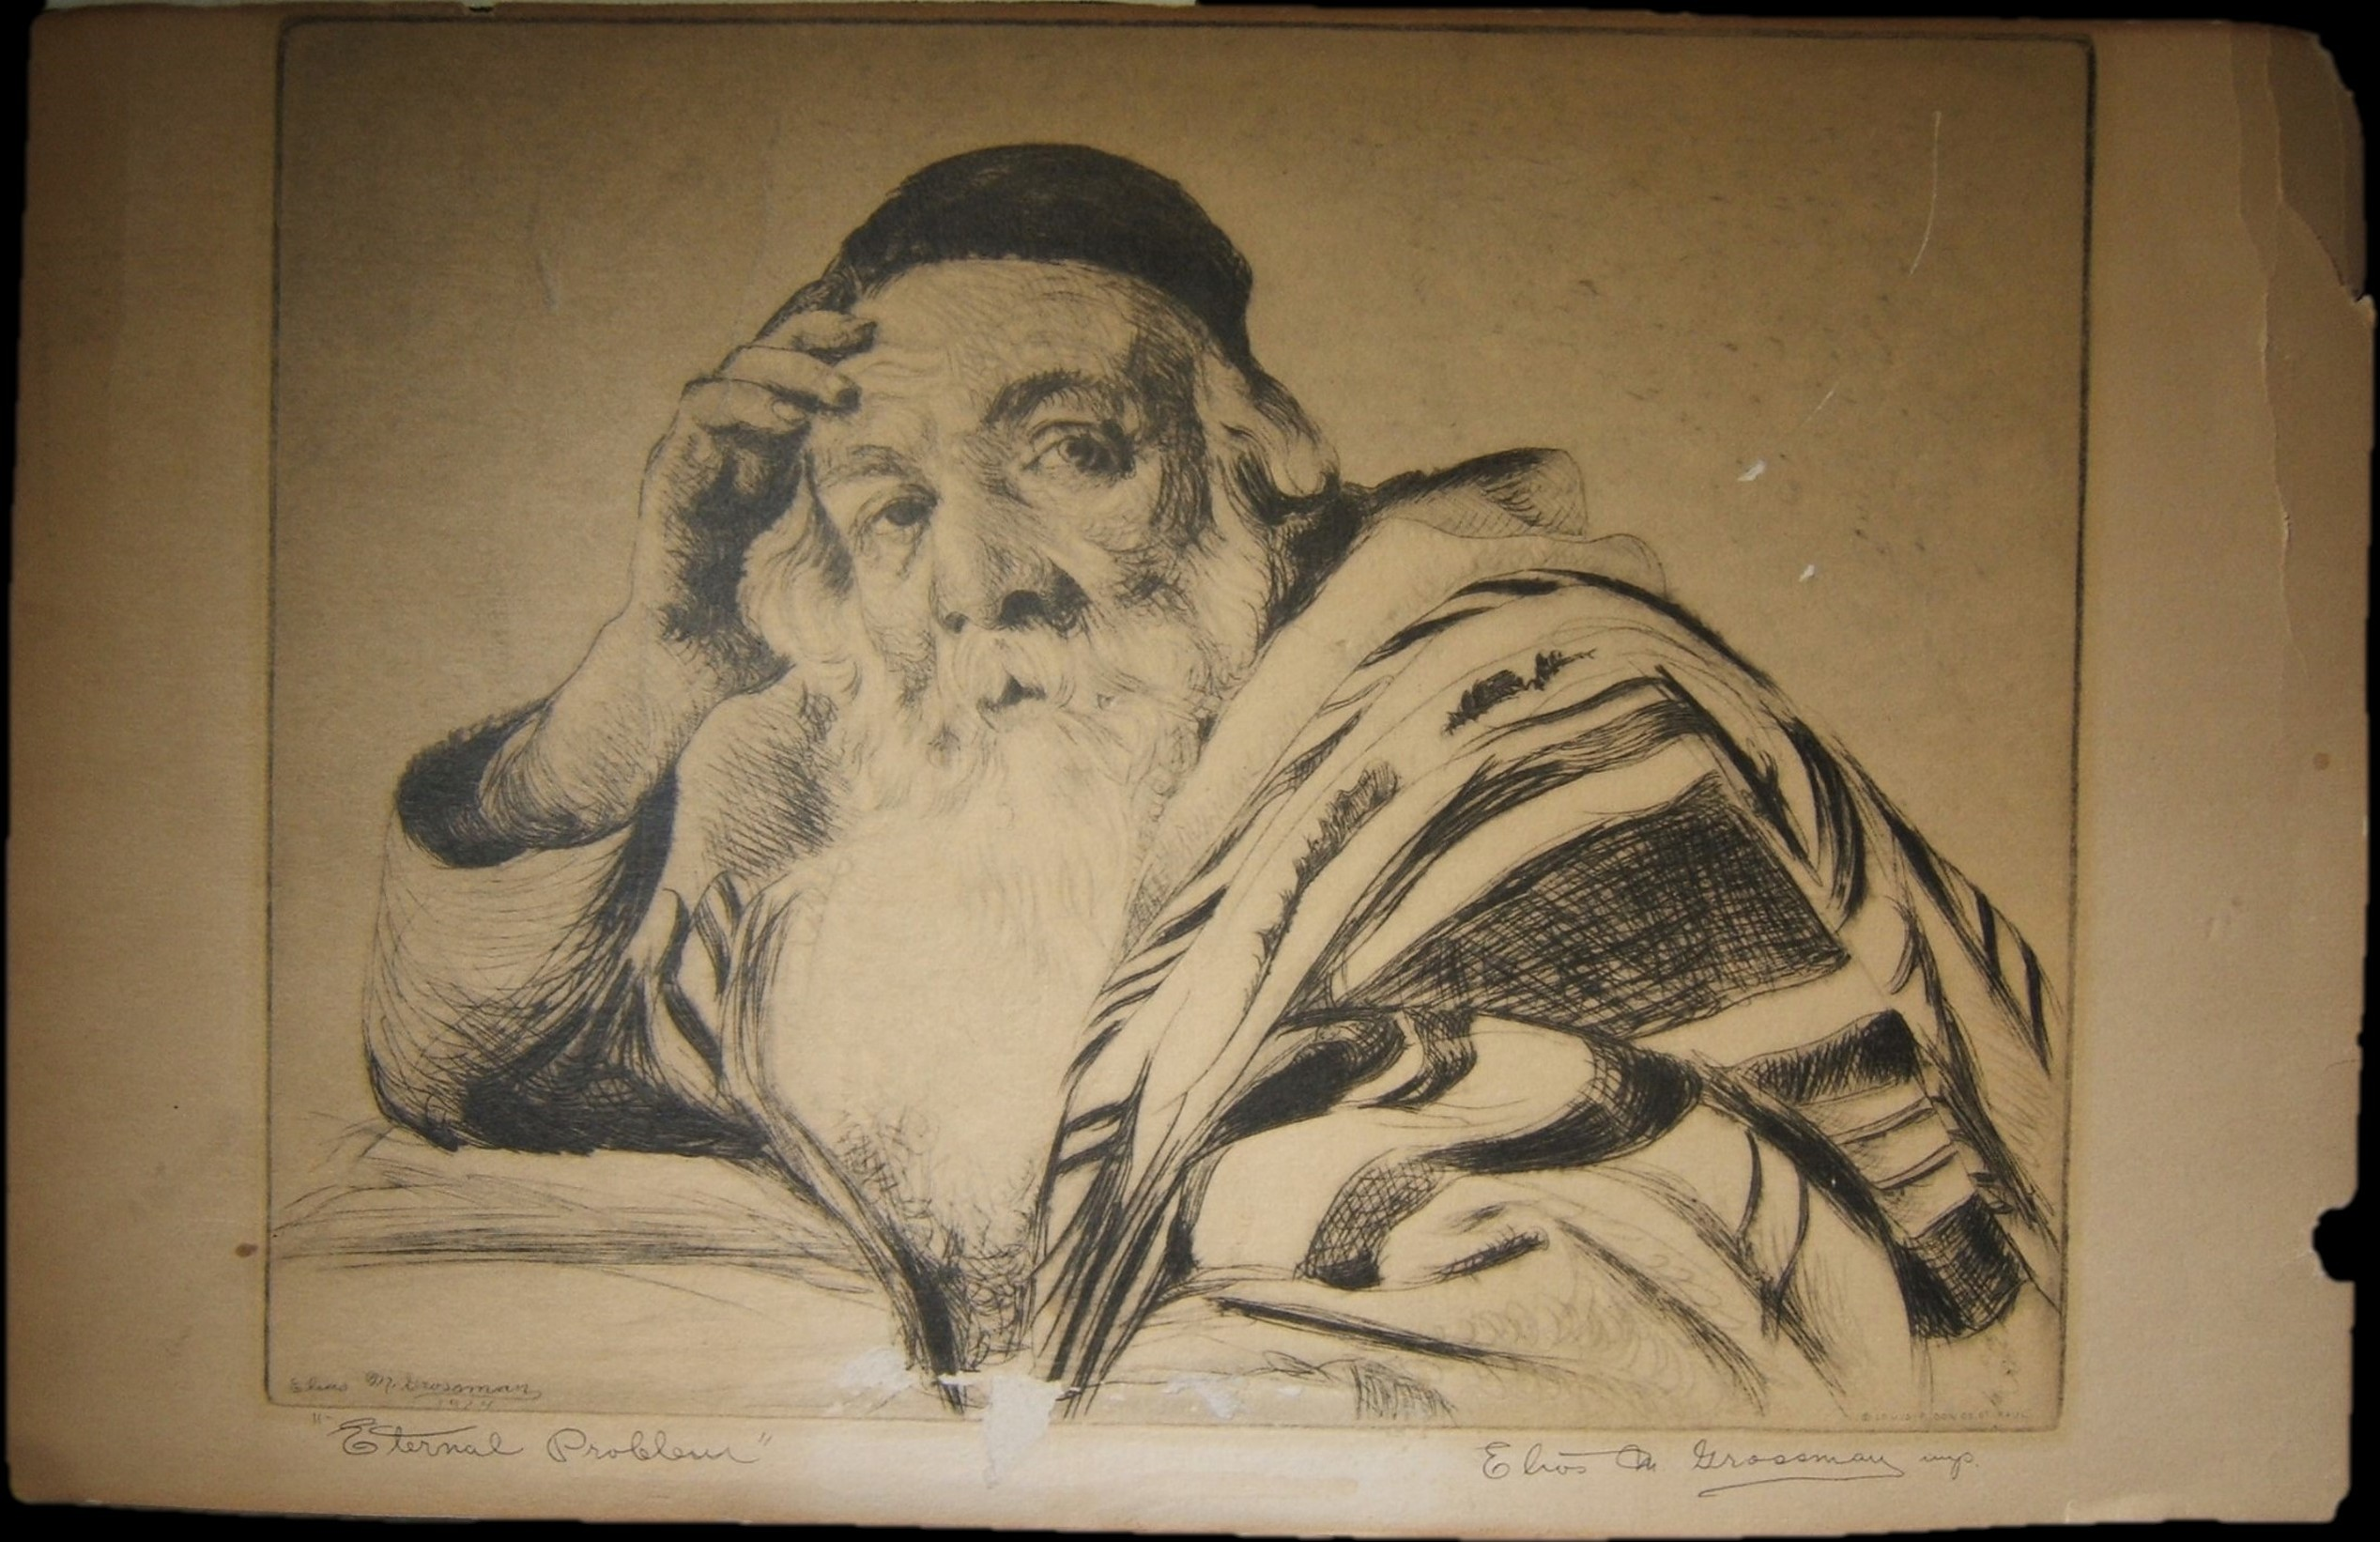 American print of Elias Grossman etching of Rabbi pondering Talmudic problem, 1924